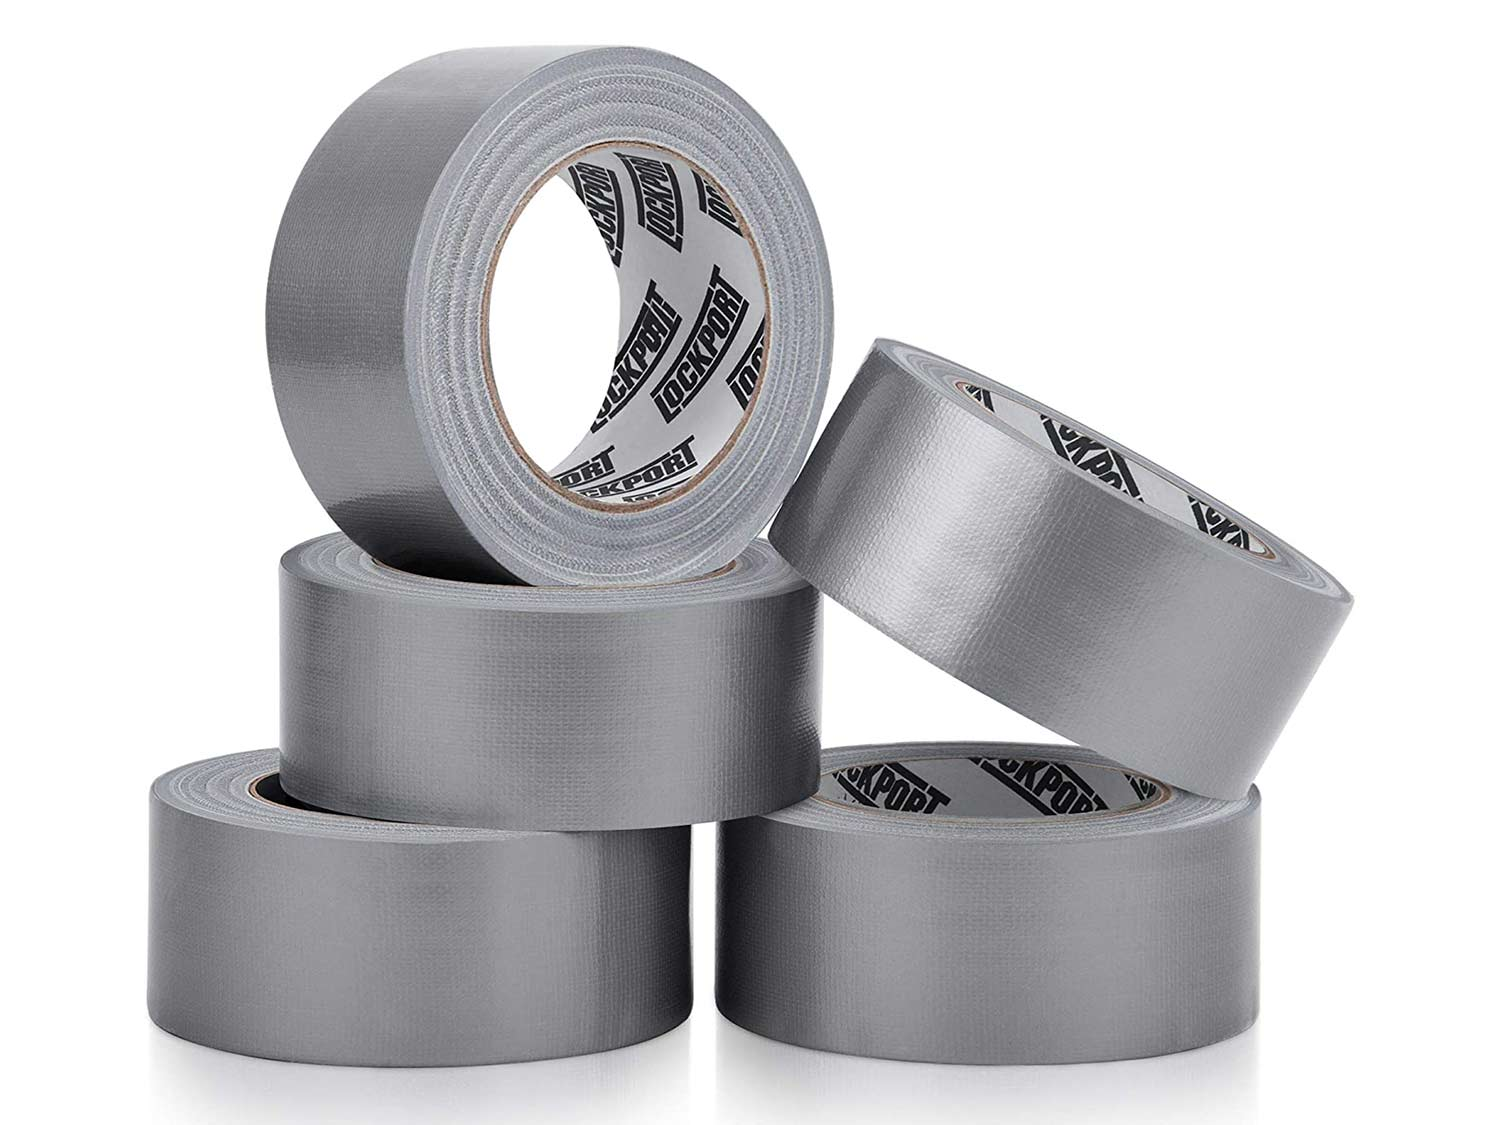 Five rolls of duct tape on a white background.